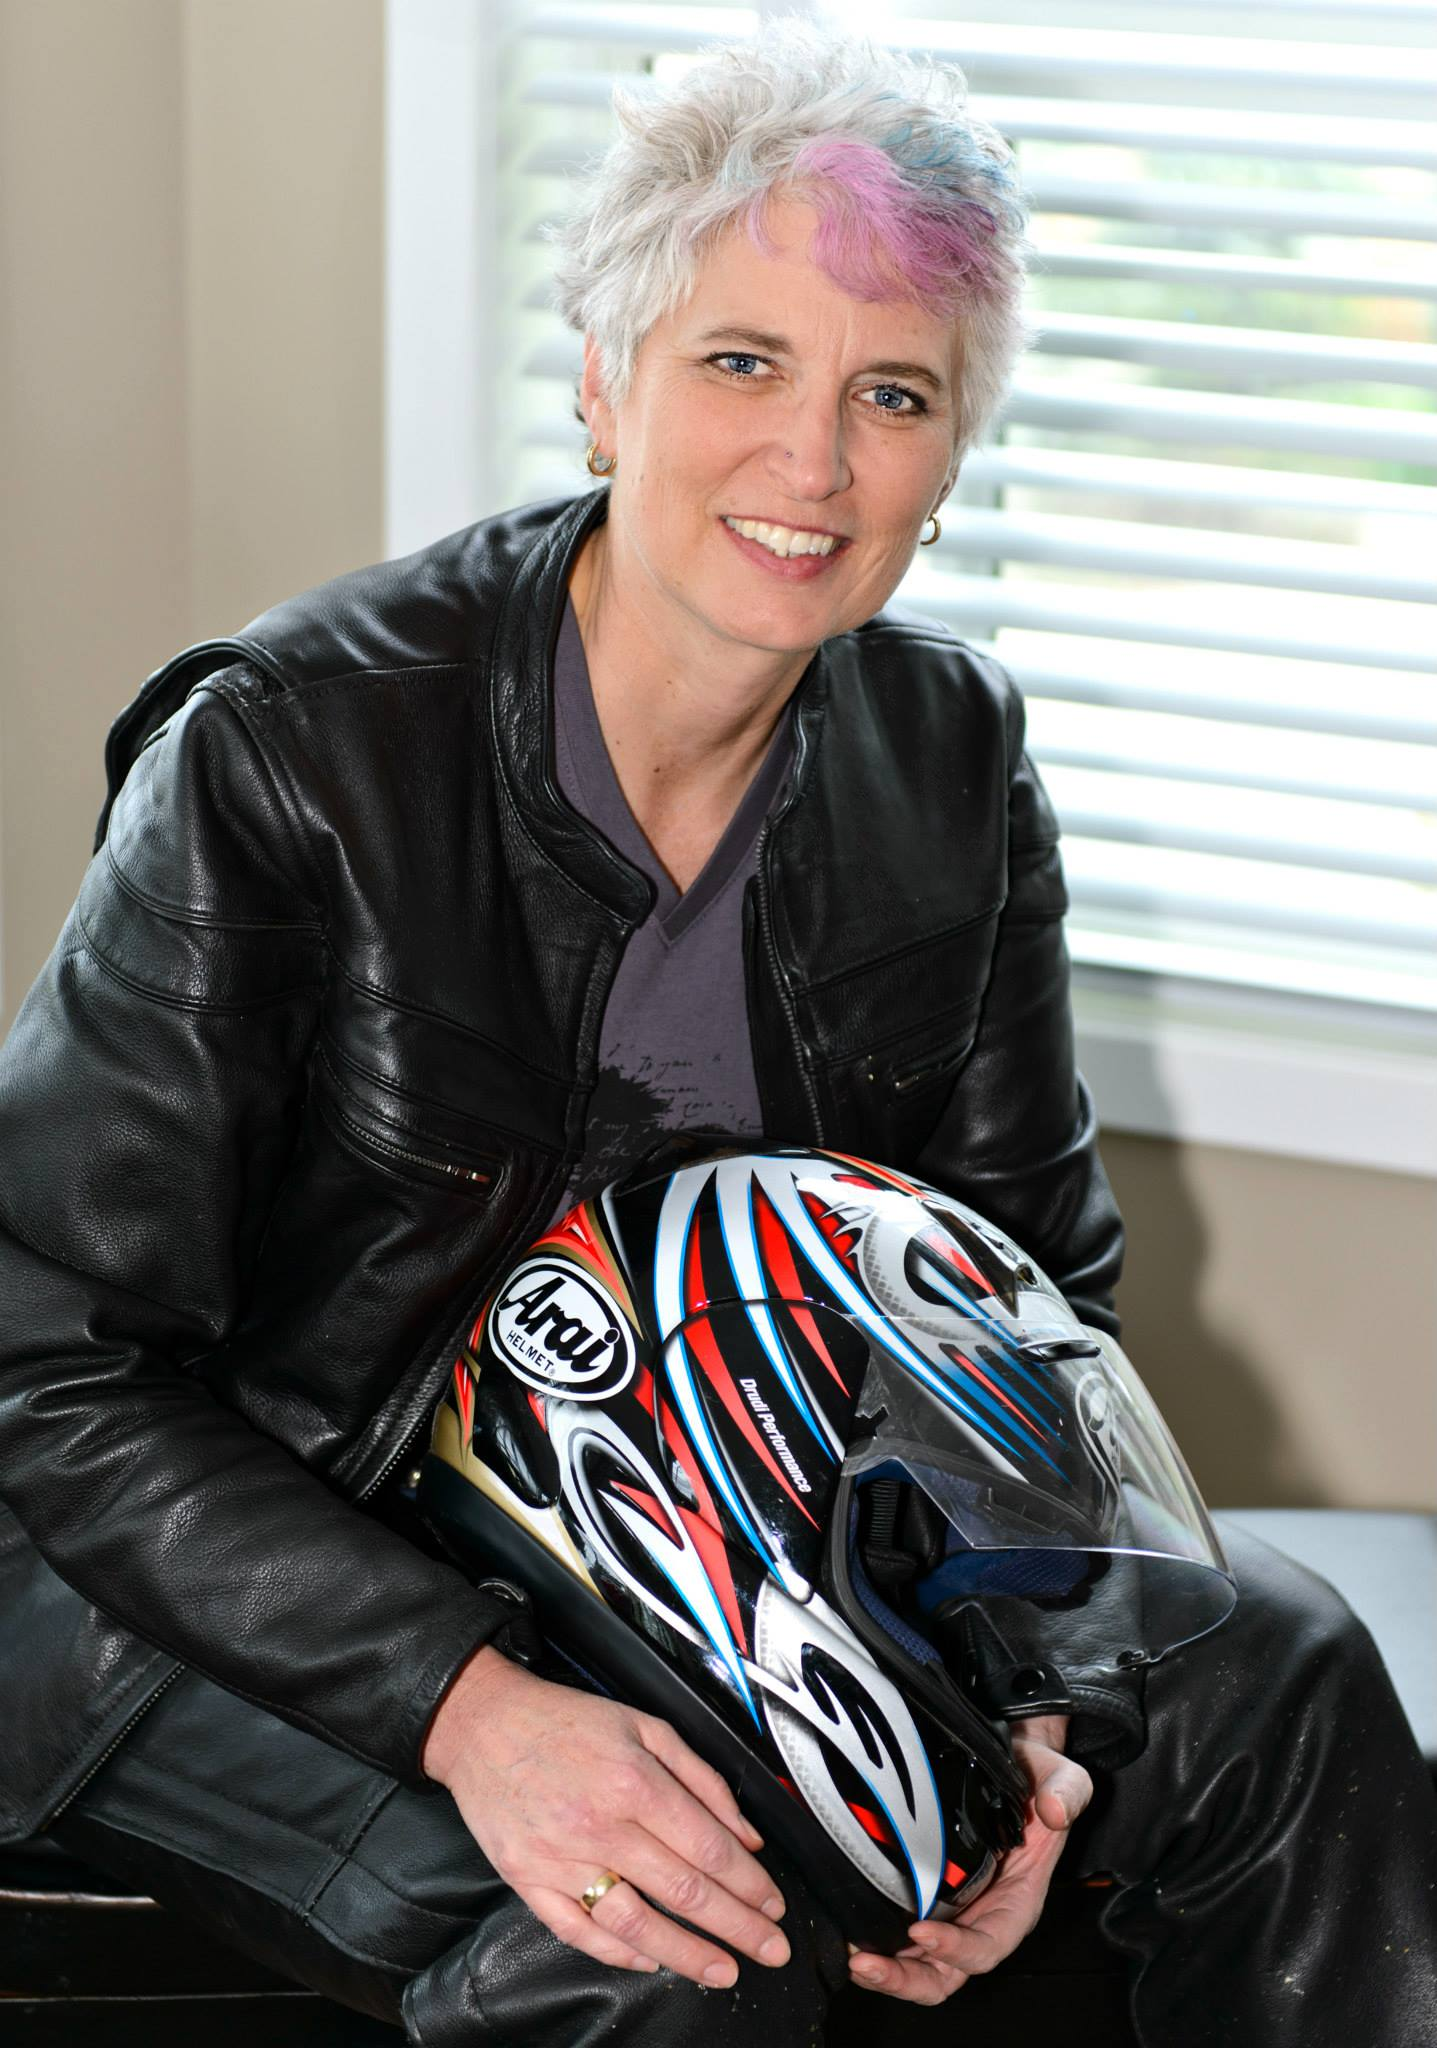 Speaker at Steel Horse Sisterhood 2015 Summit